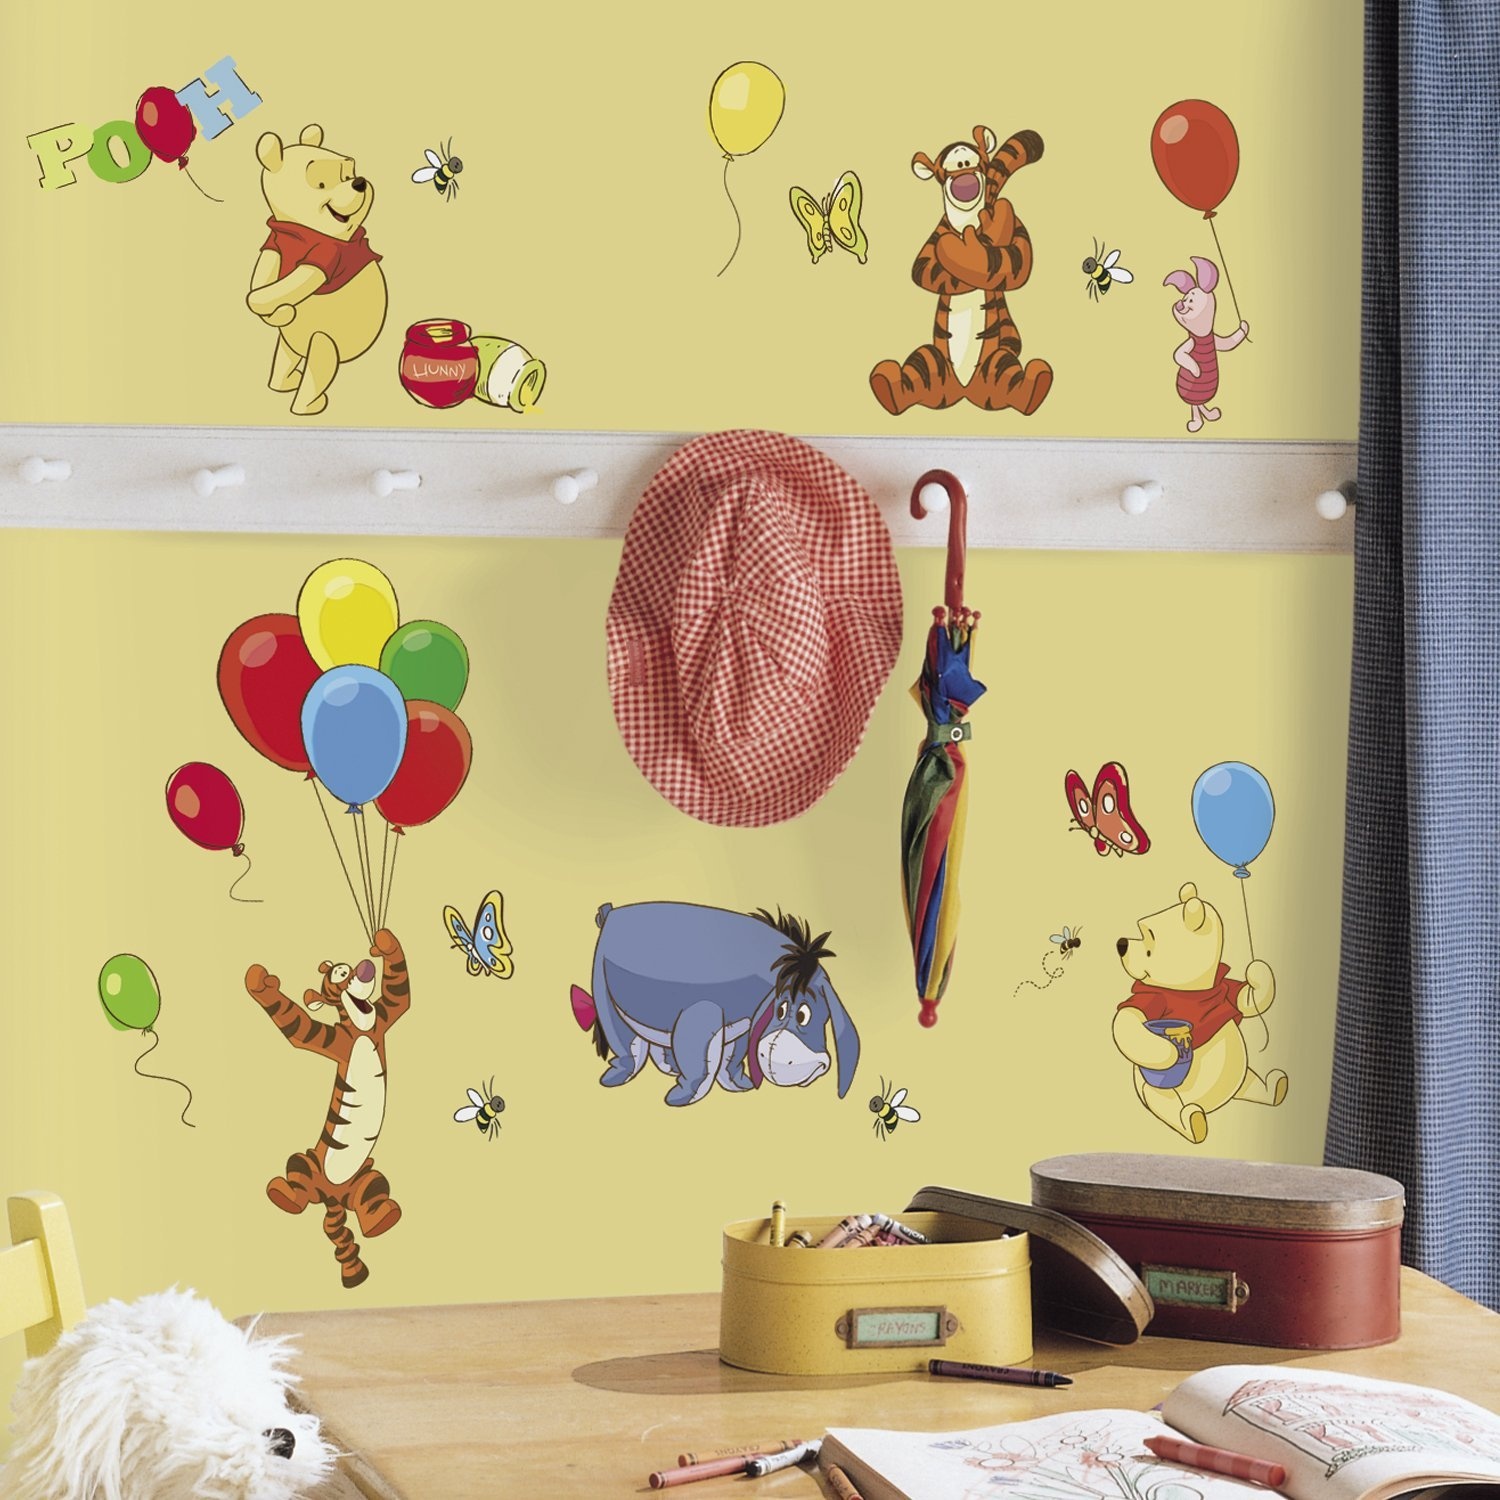 Amazon.com: Roommates Rmk1498Scs Pooh And Friends Peel & Stick Wall ...